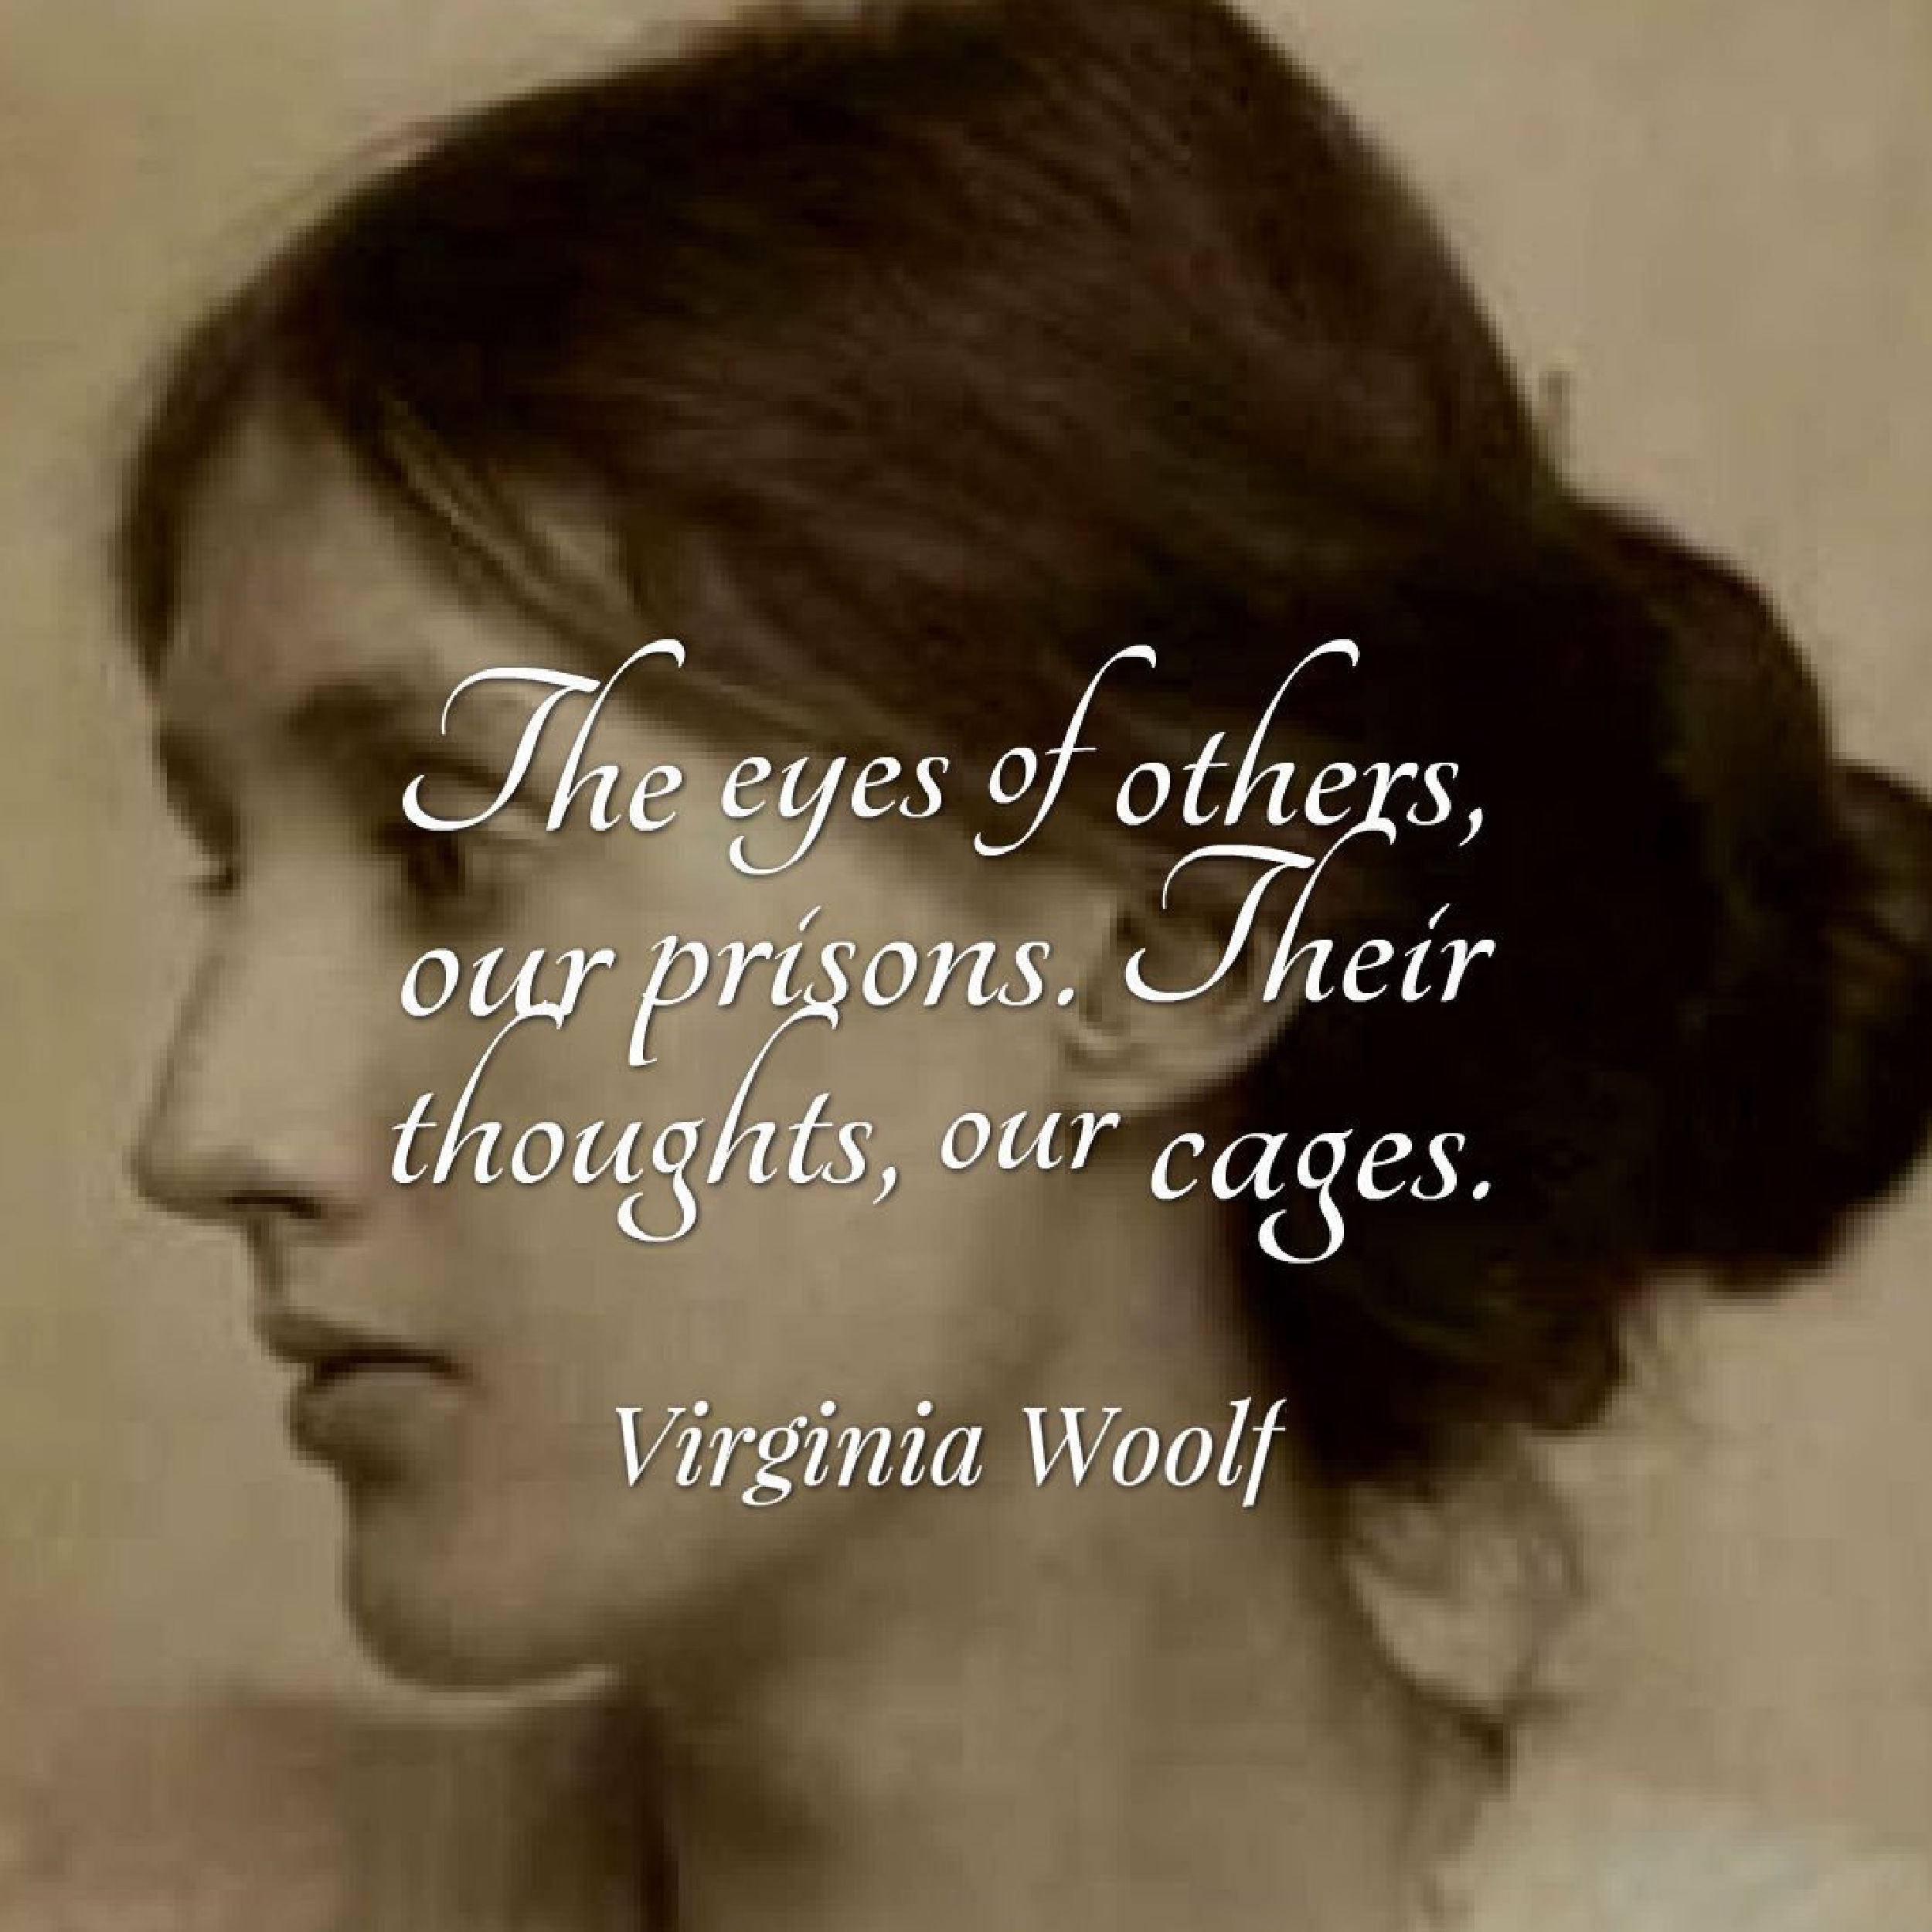 Happy Birthday, Virginia Woolf.